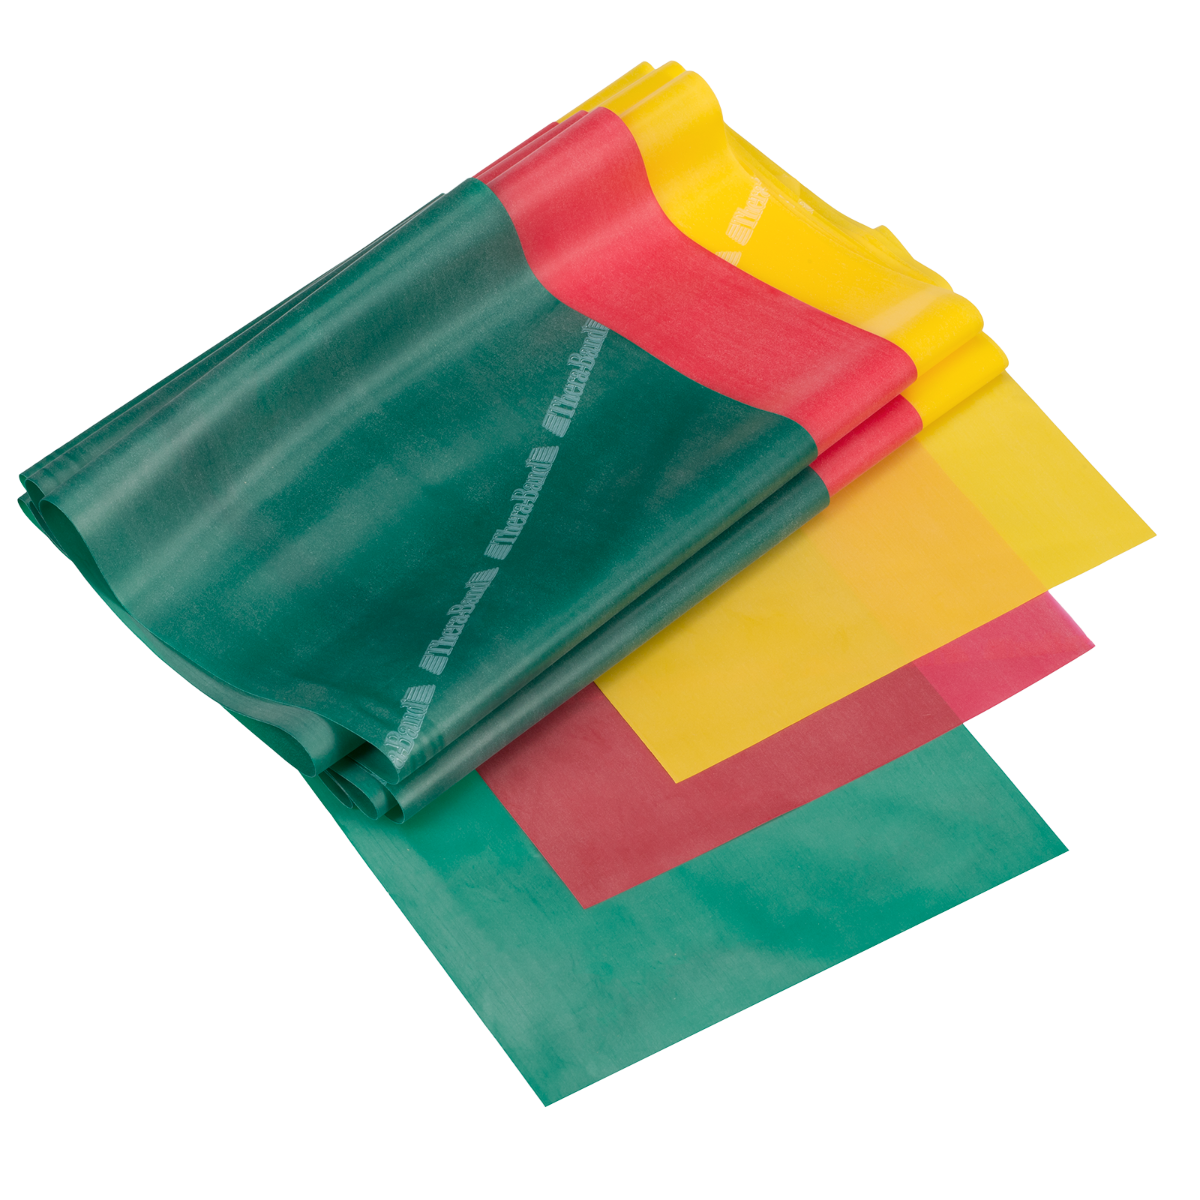 Three beginner level TheraBand resistance bands in green, red and yellow